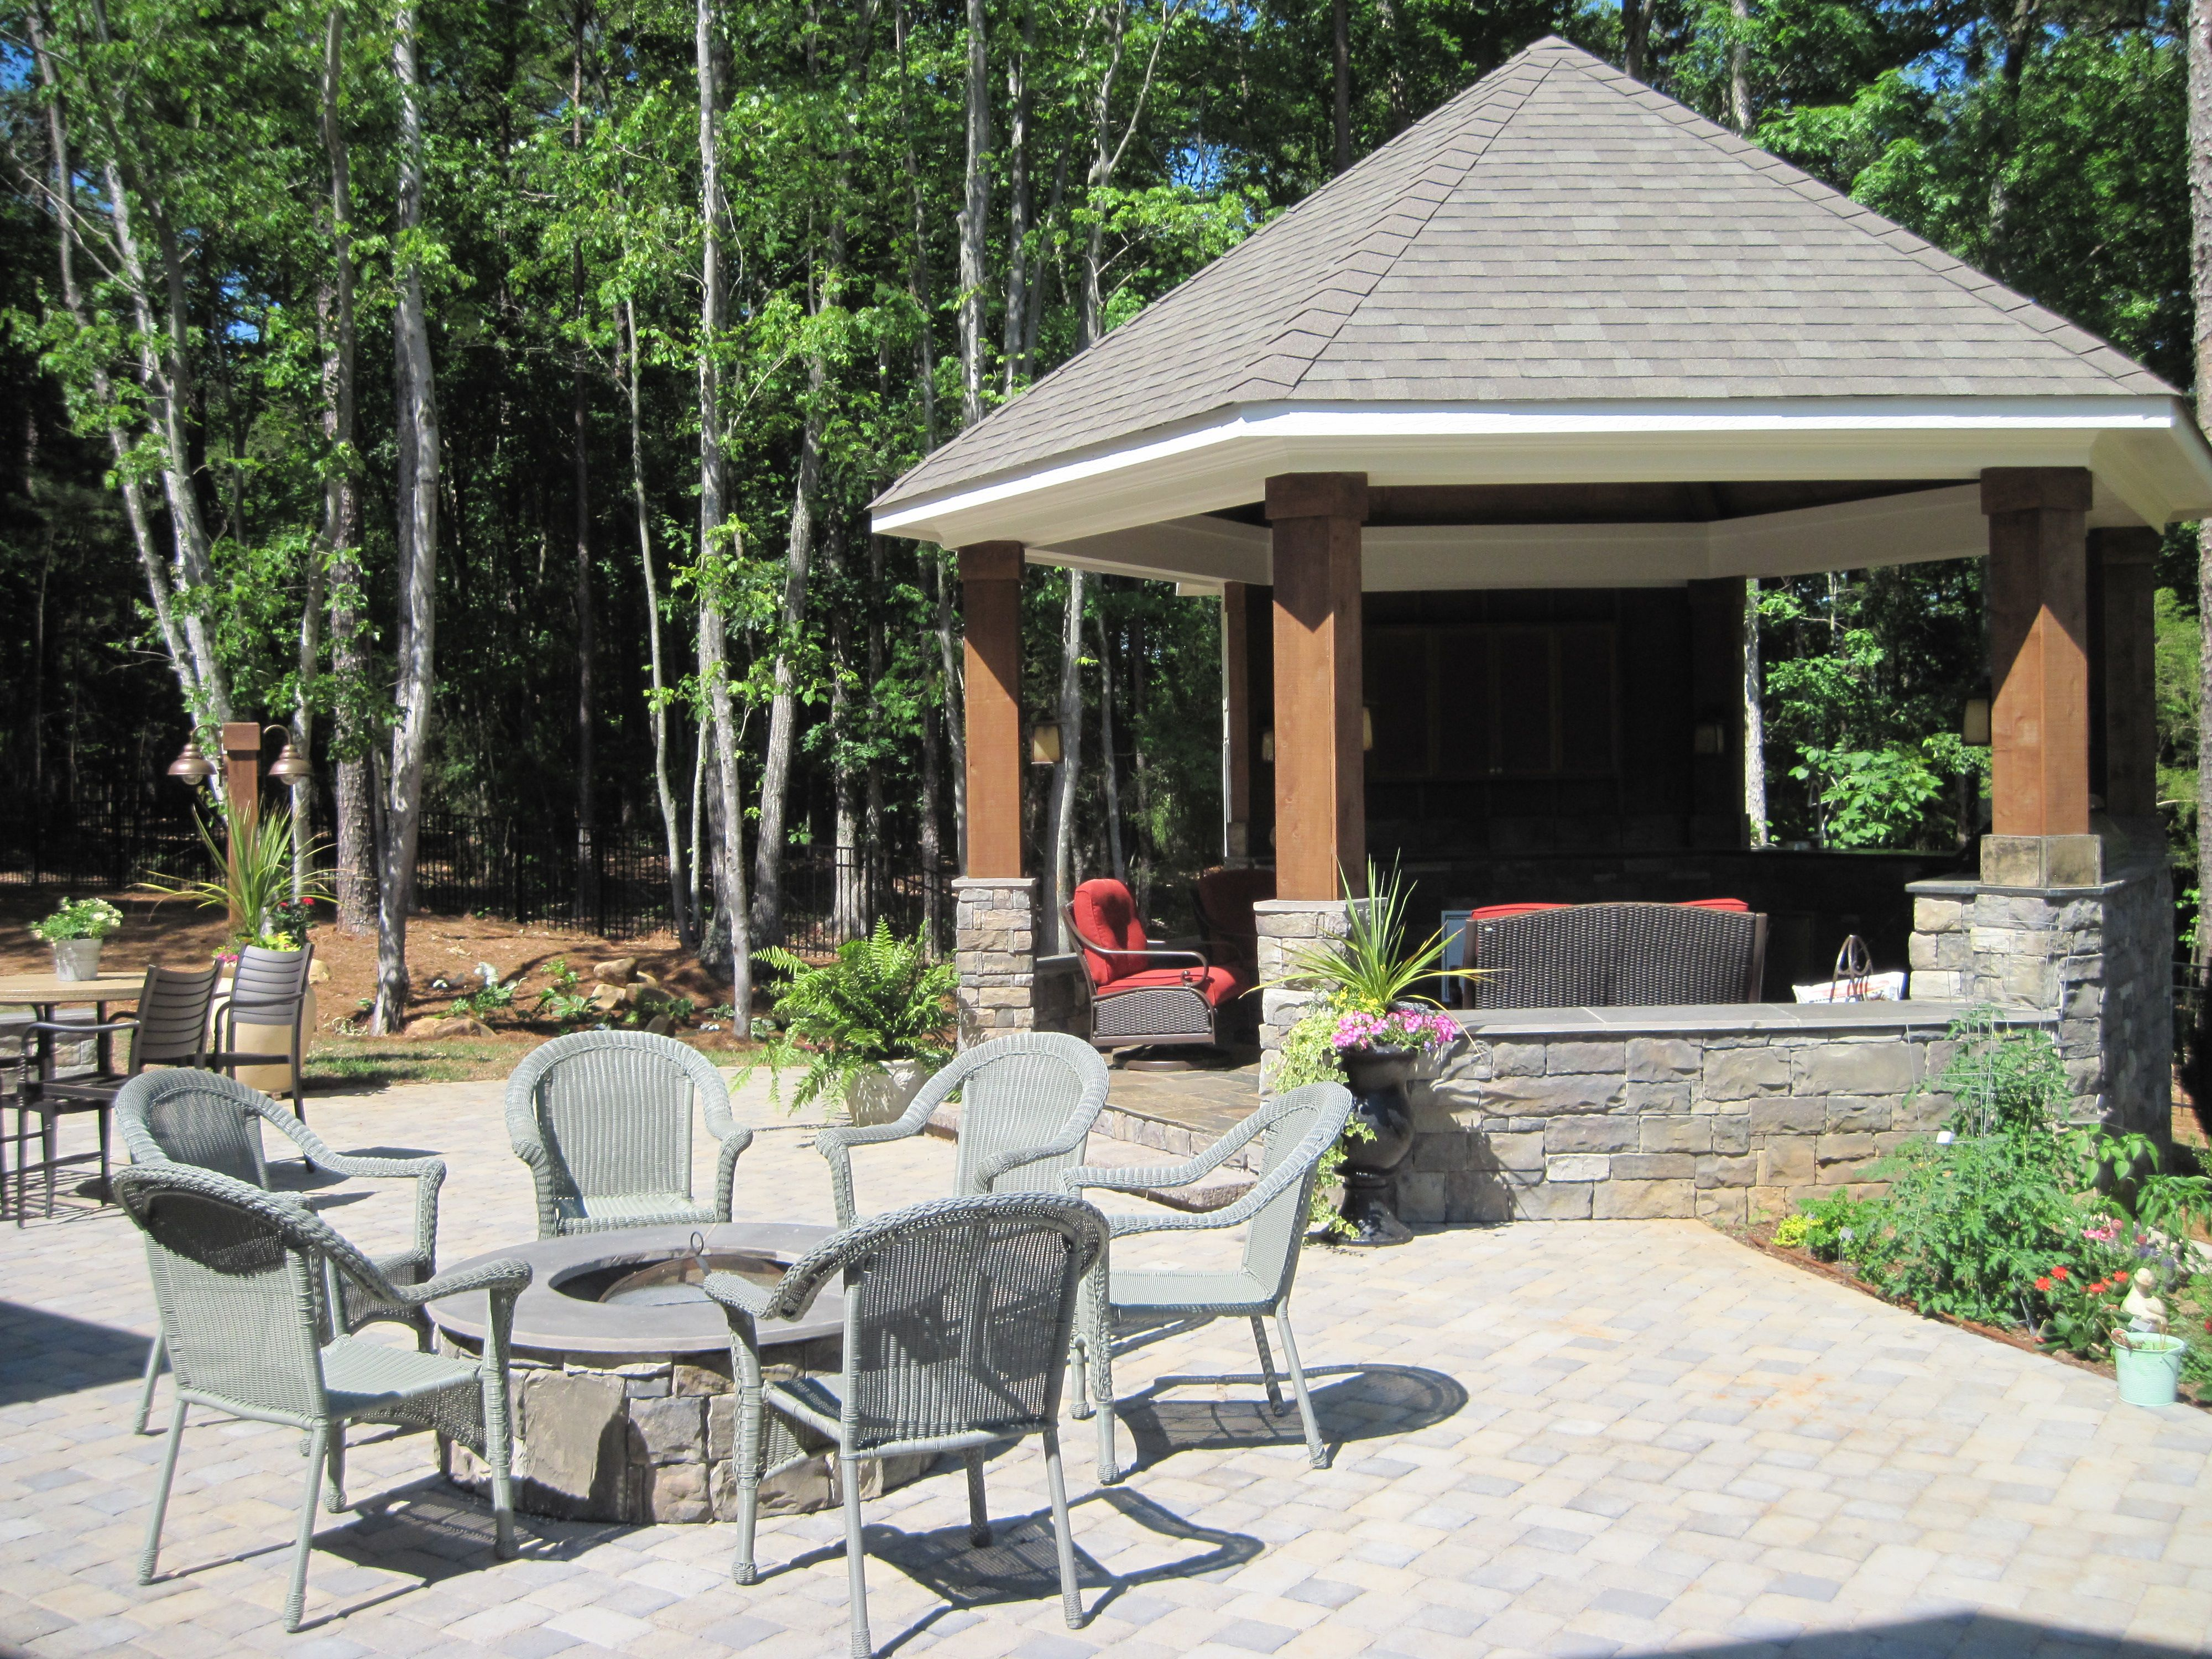 Gazebo With An Outdoor Kitchen Inside It And A Paver Patio